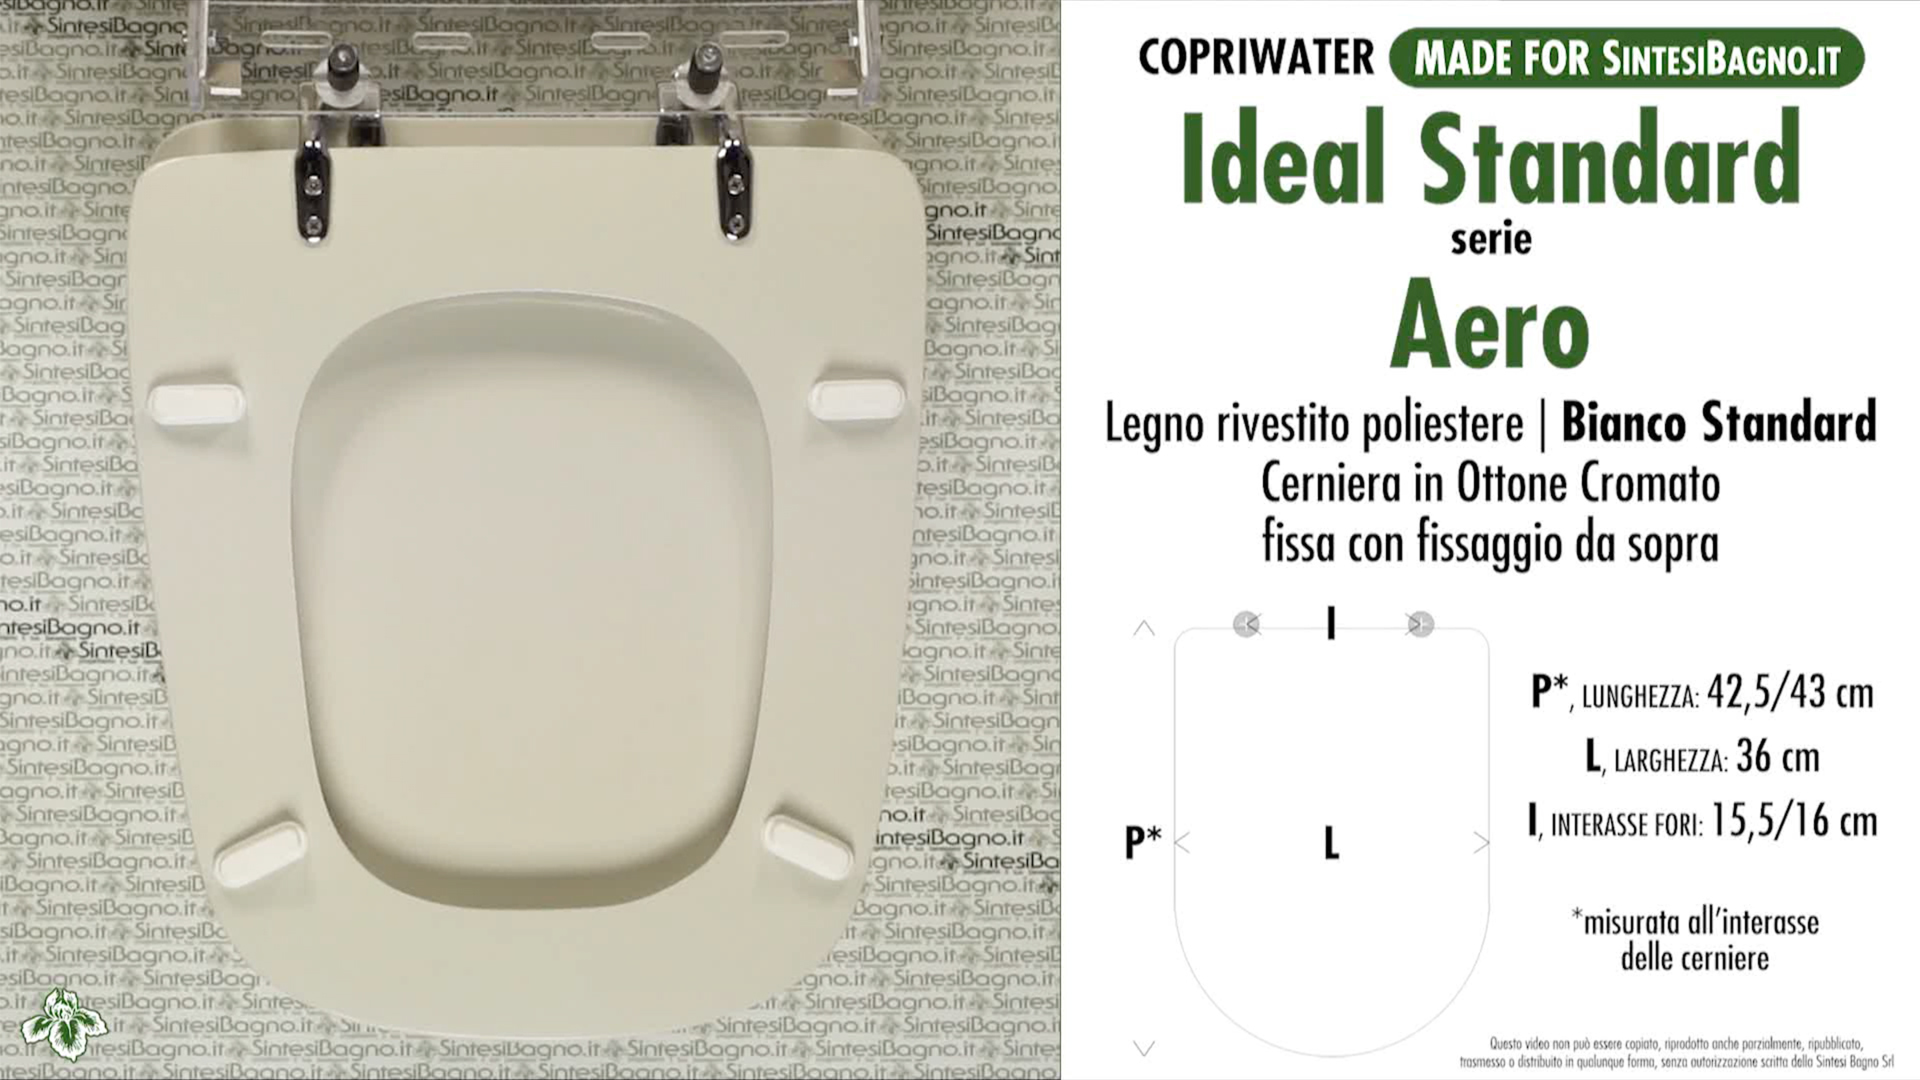 Wc Seat Made For Wc Aero Ideal Standard Model Standard White Type Dedicated Sintesibagno Shop Online